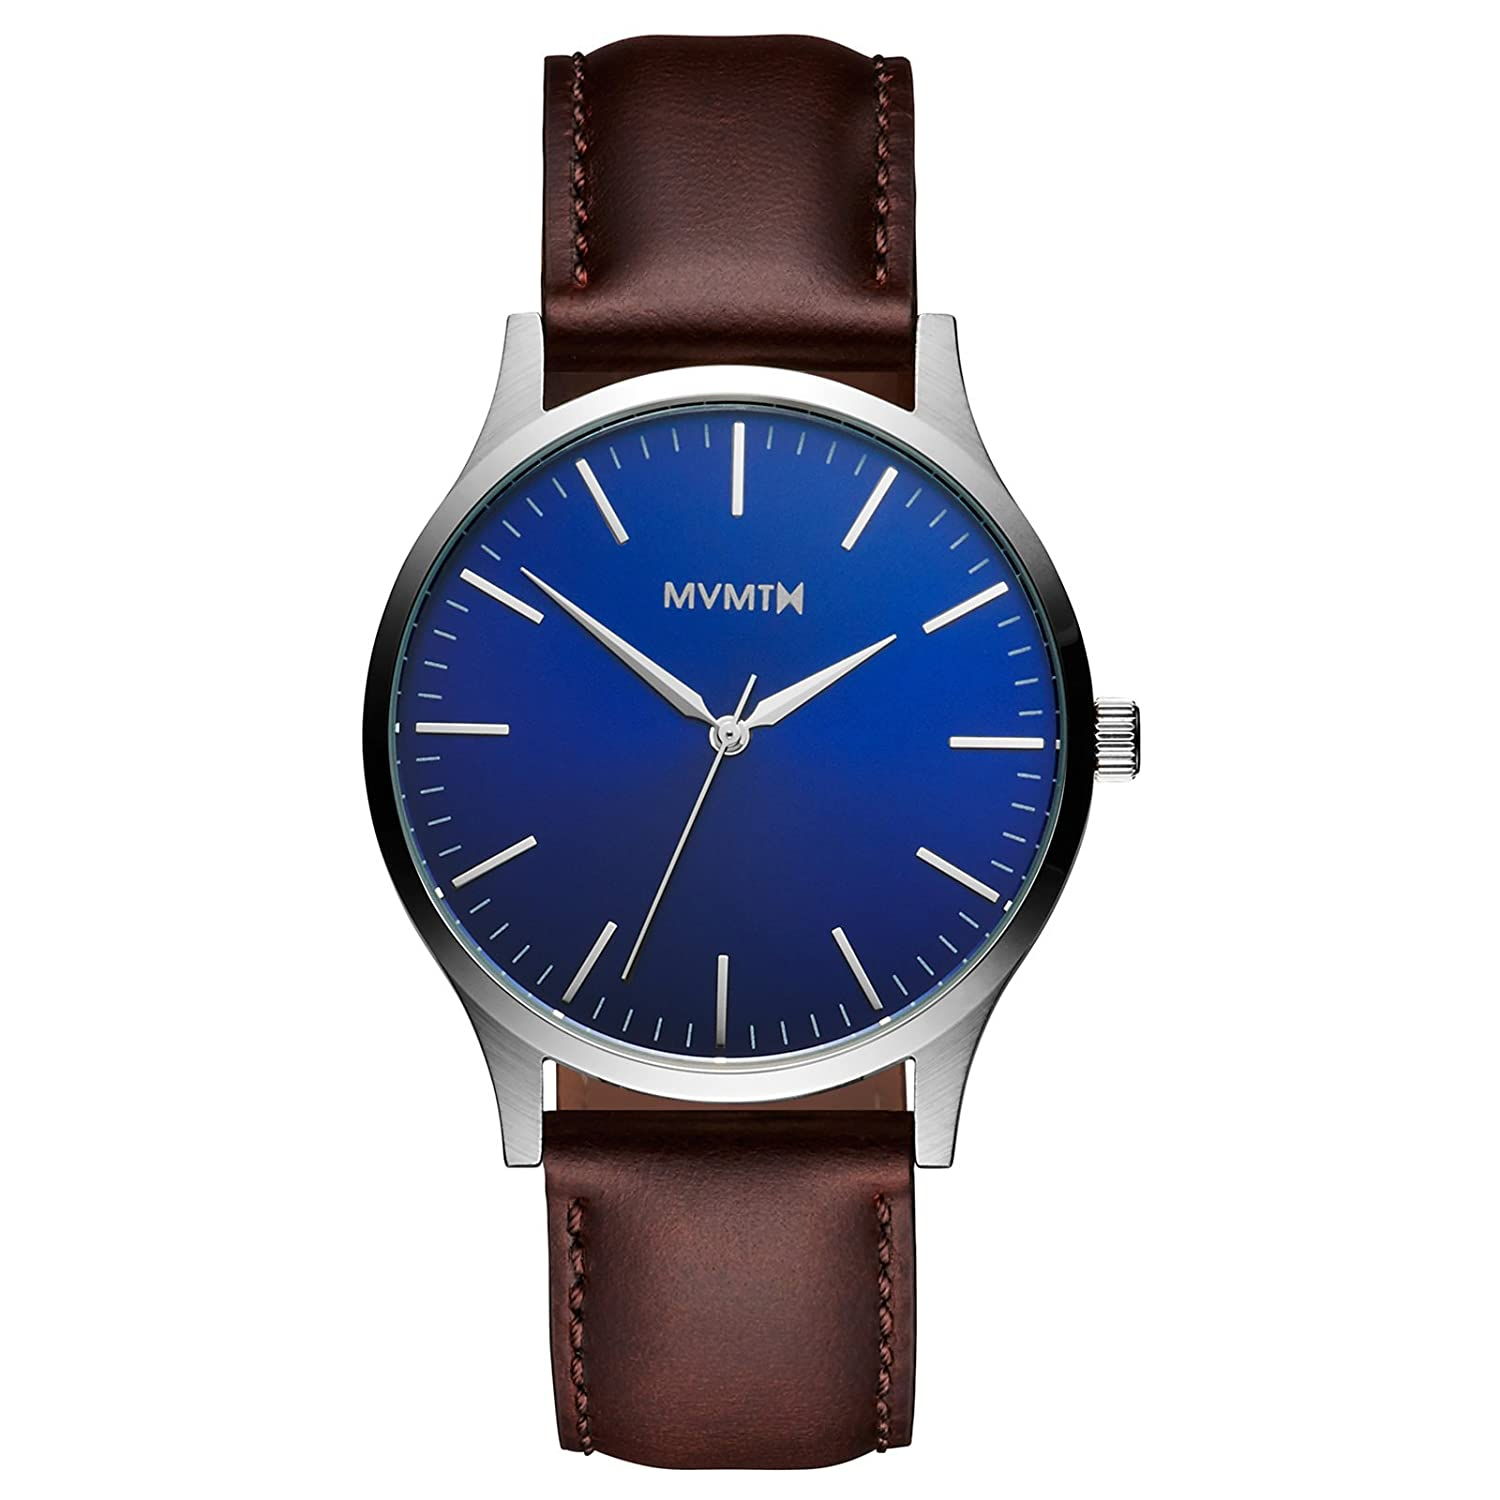 MVMT Watches 40 Series Herren Uhr Blue-Brown Leather MT01BBL